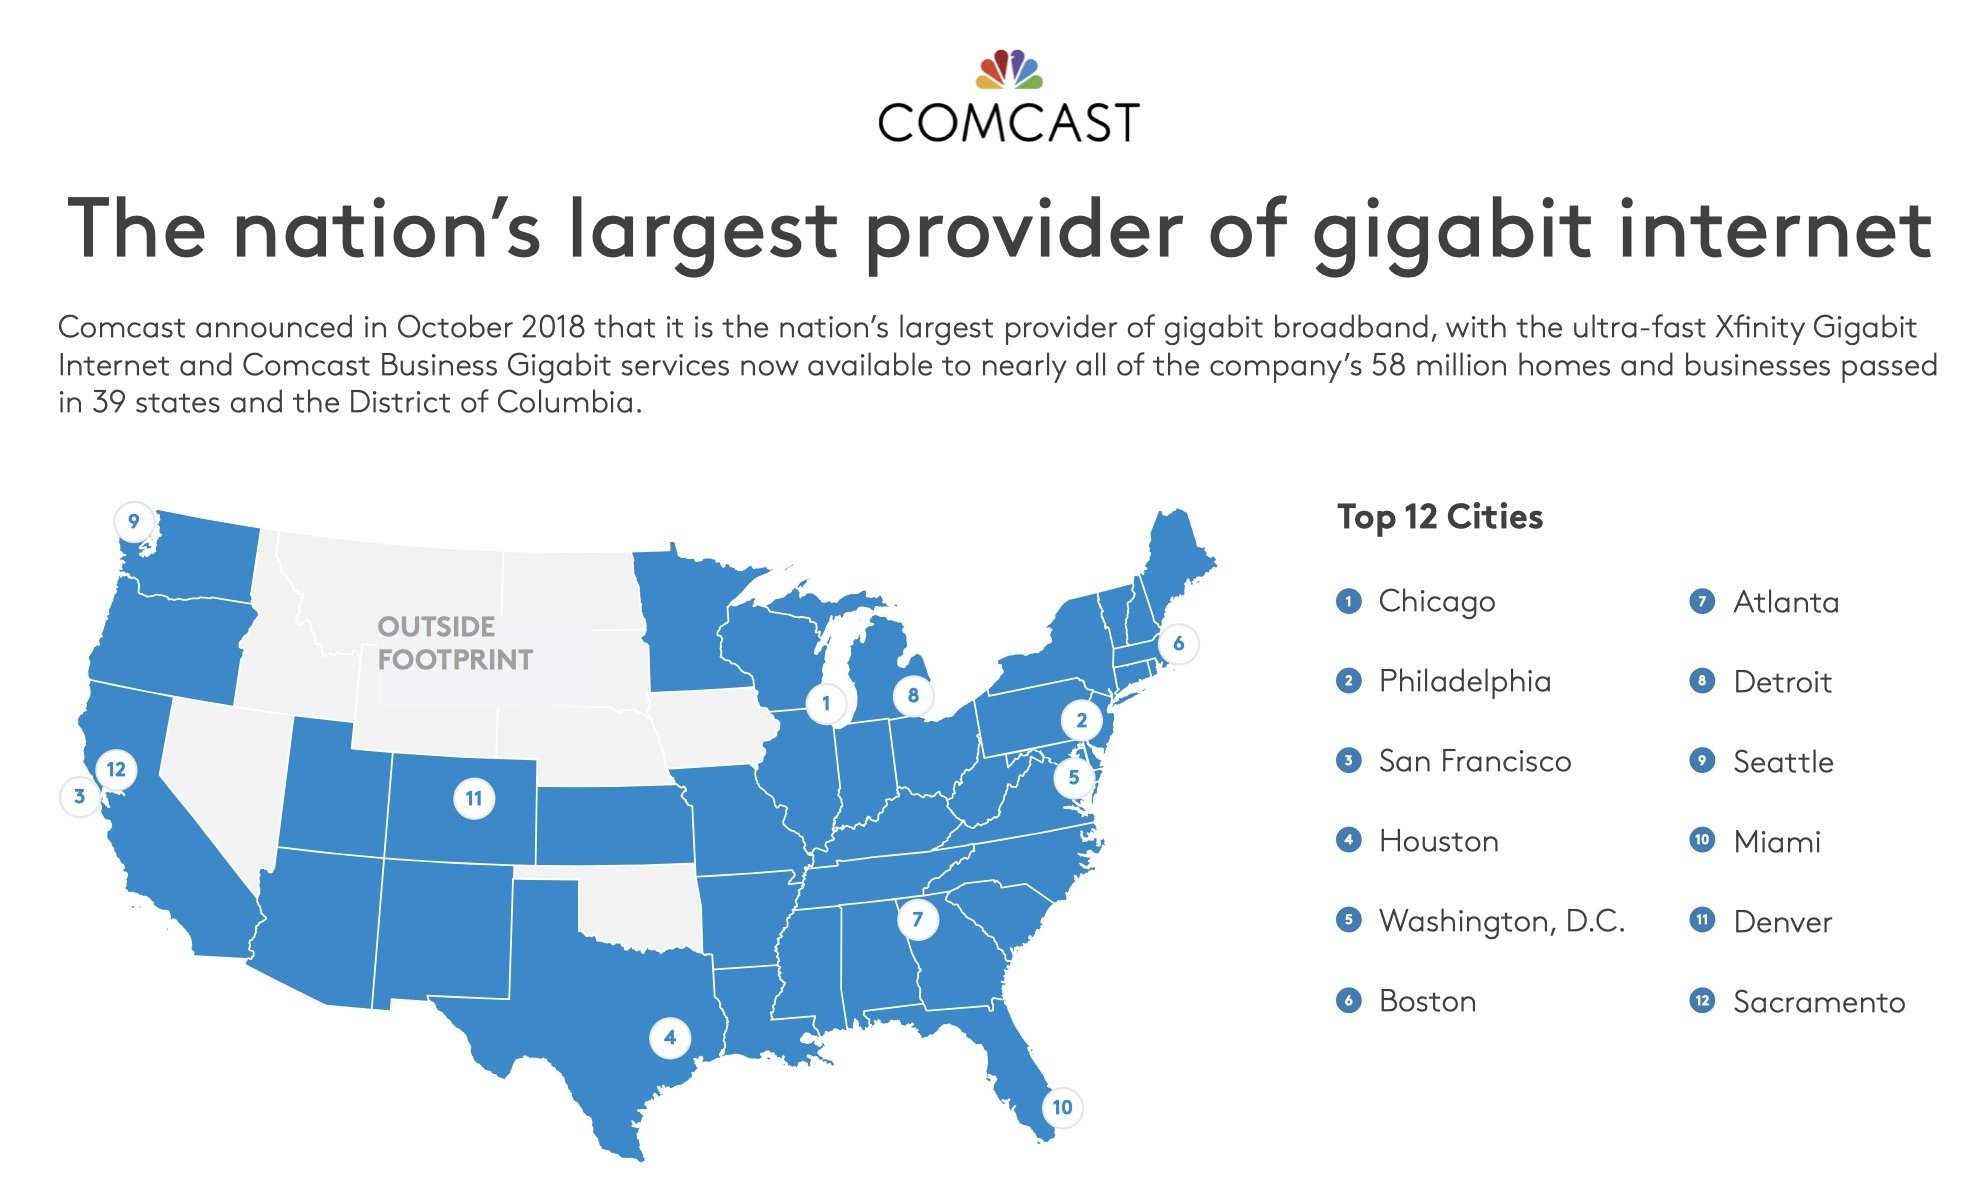 Comcast se jacta de su red gigabit en una diapositiva de un kit de prensa.